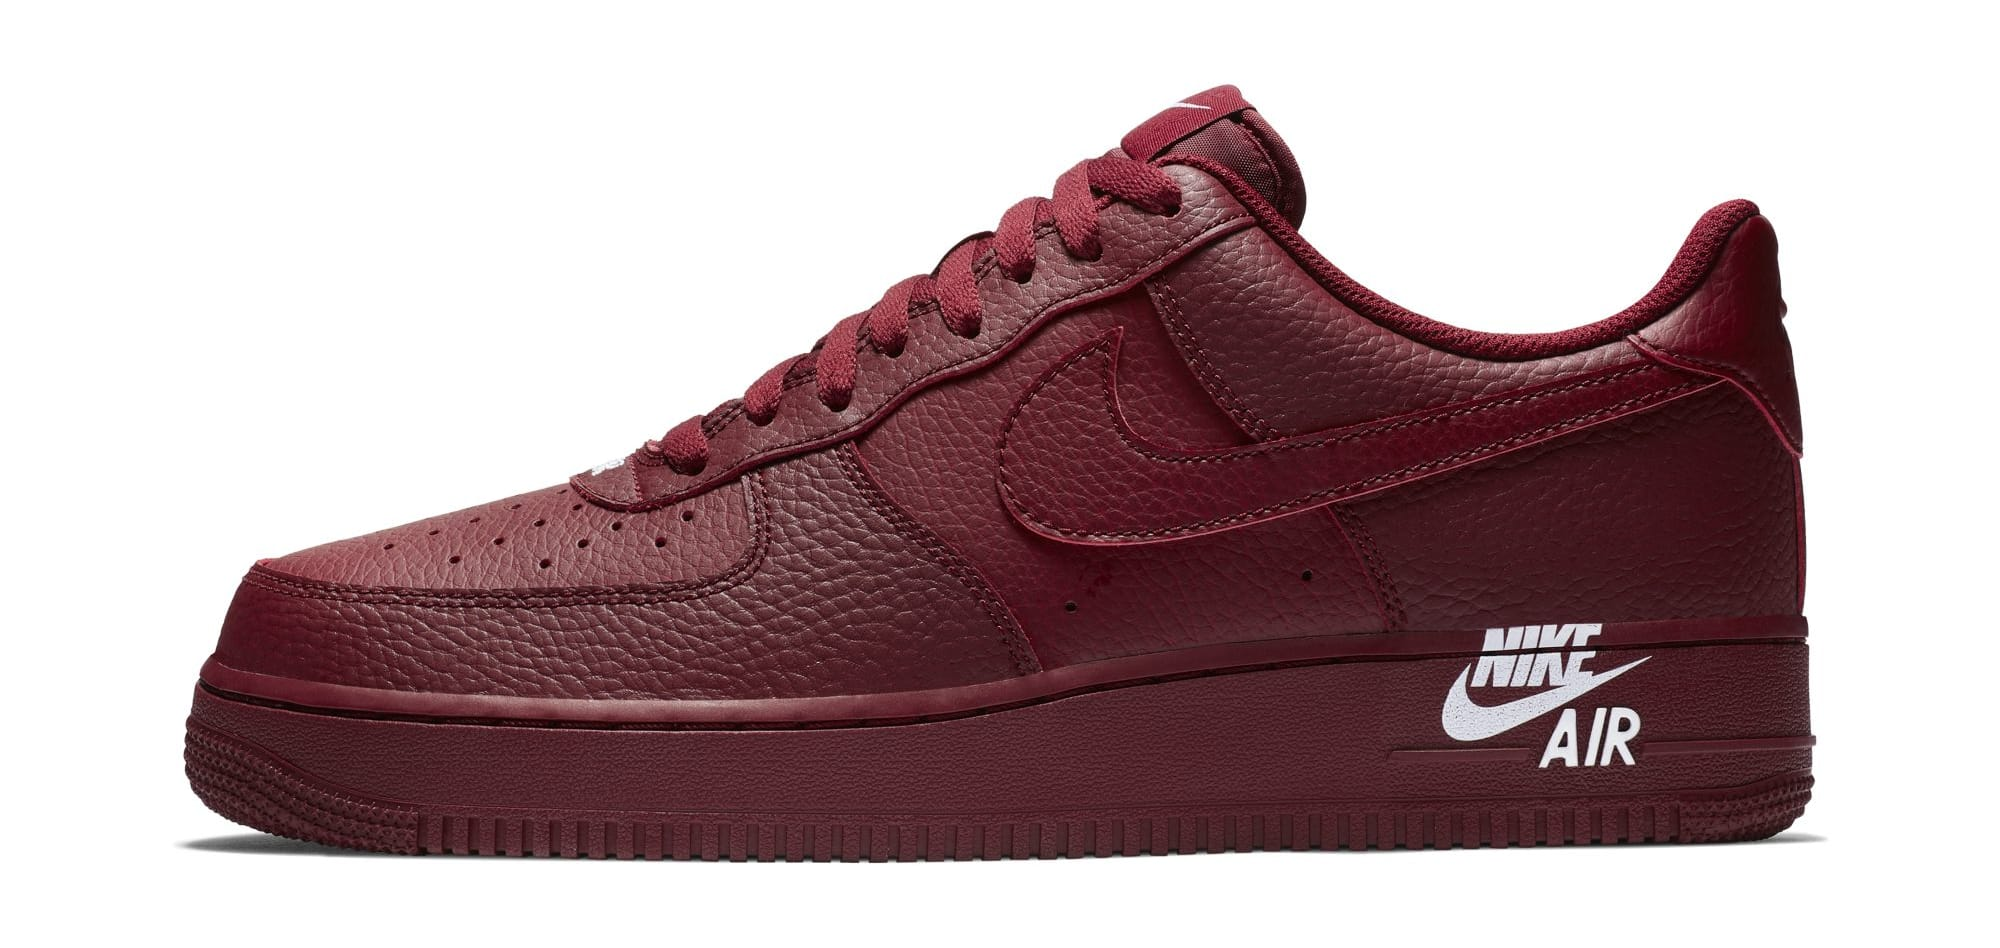 Nike Air Force 1 07 LTHR 'Team Red' (Lateral)